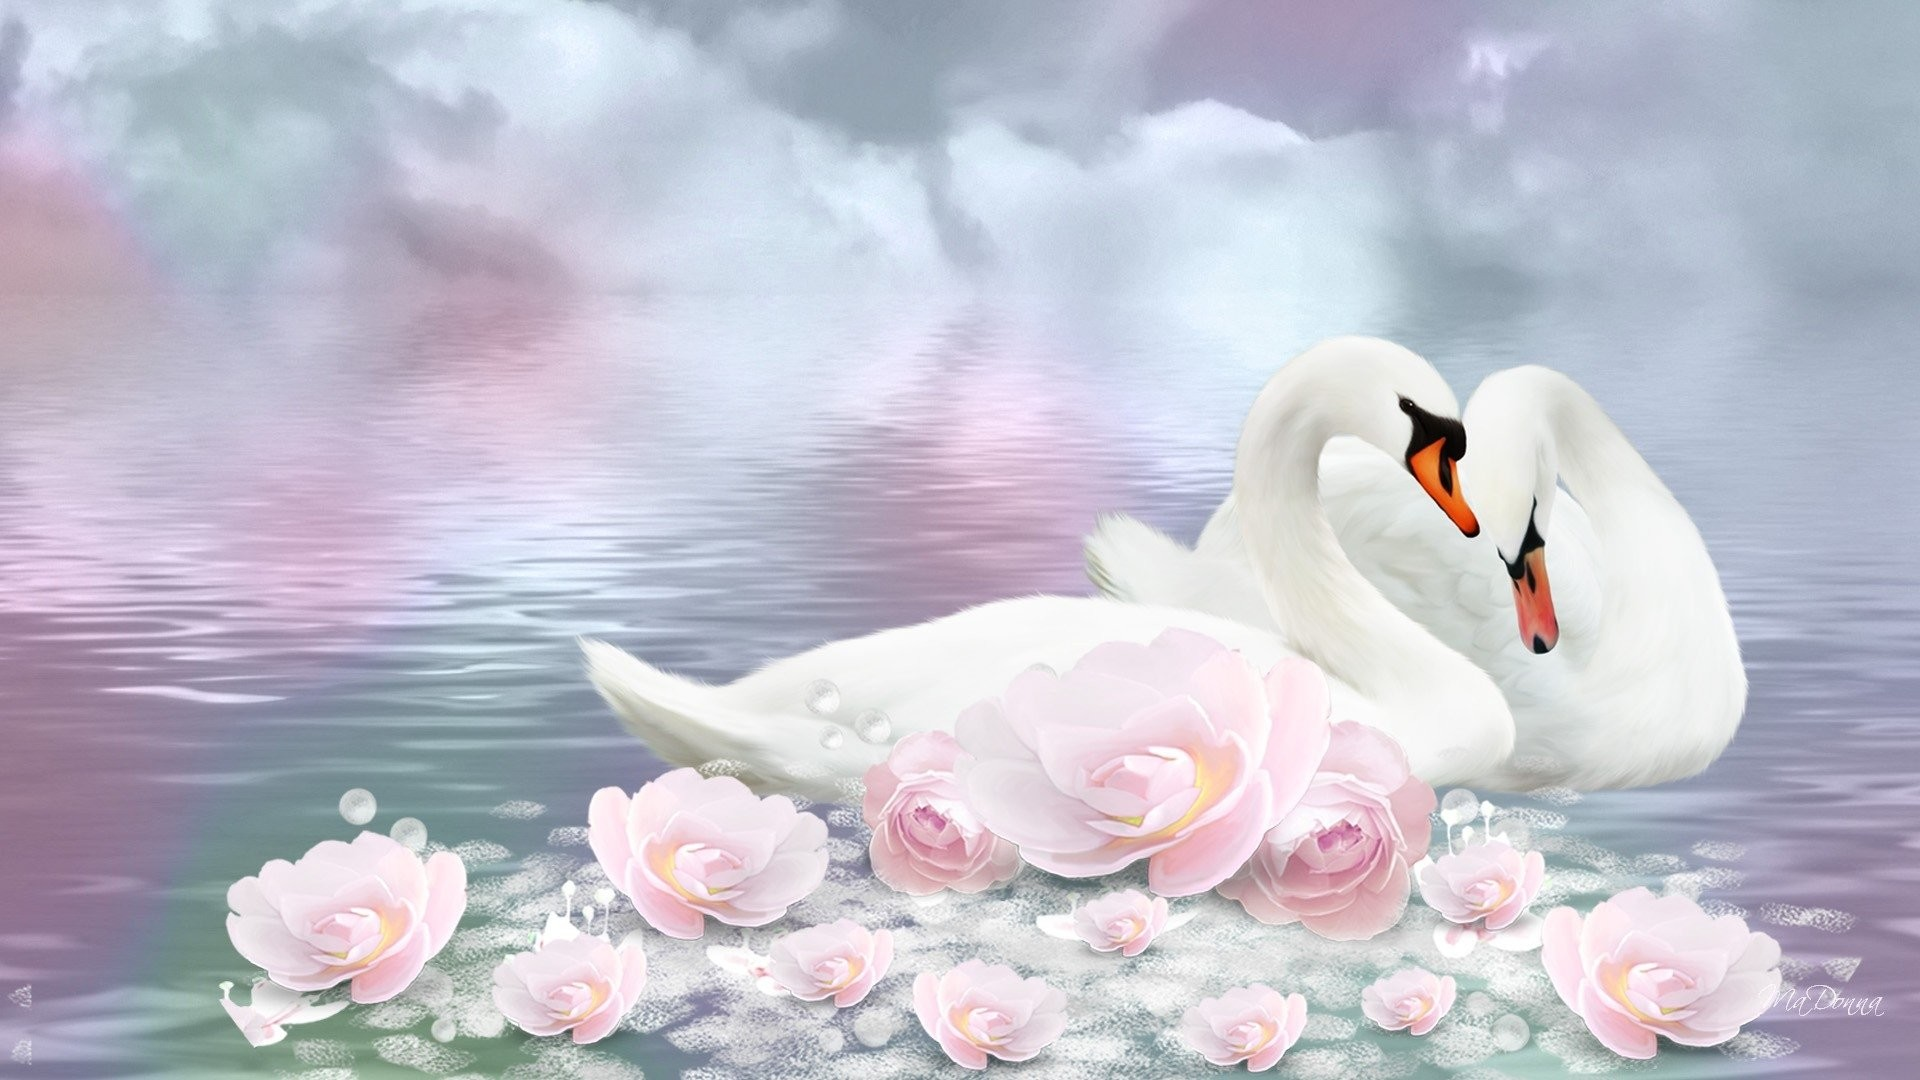 Res: 1920x1080, HD Wallpaper   Background Image ID:676689.  Animal Swan